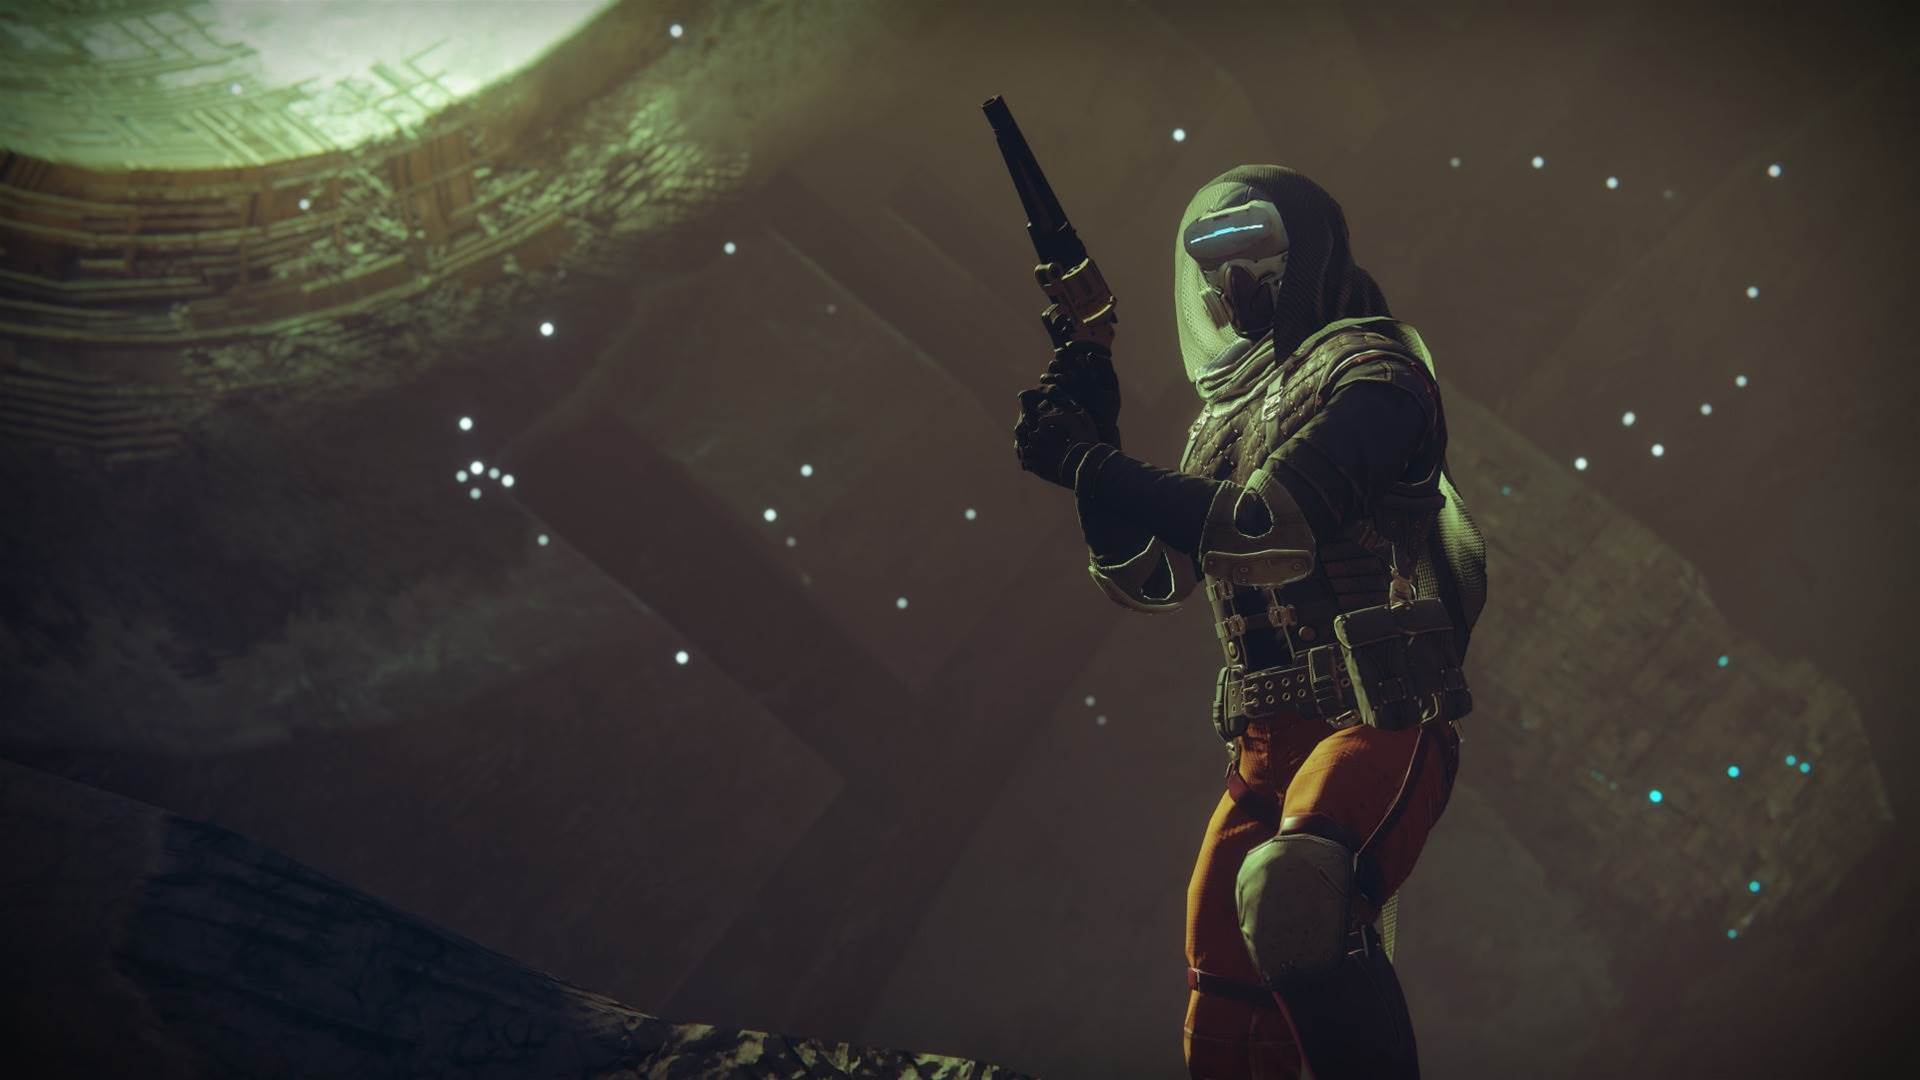 These Destiny 2 launch screens strike a pose